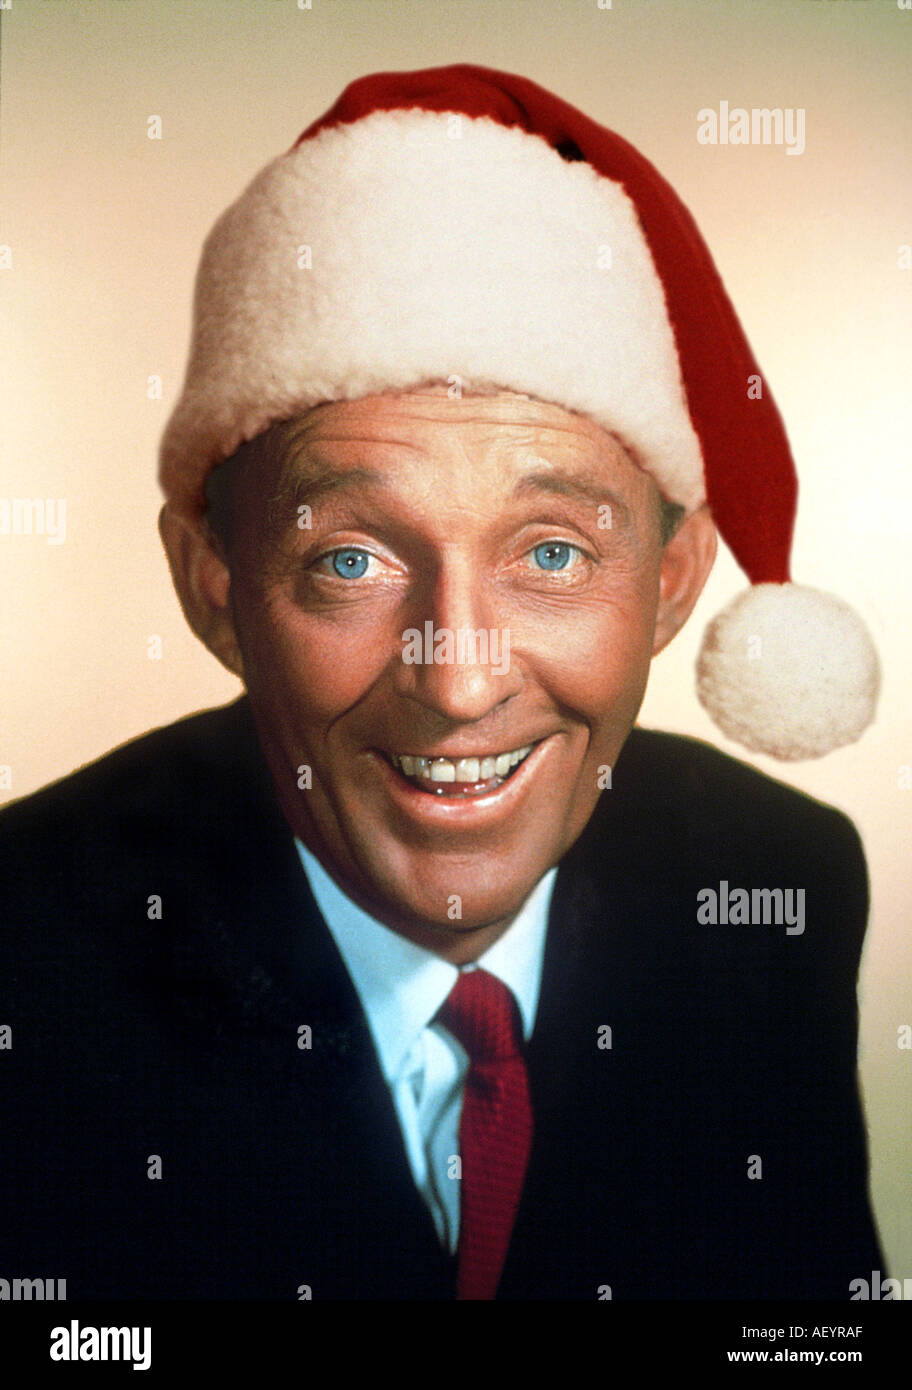 Bing Crosby Christmas Album.Bing Crosby Christmas Stock Photos Bing Crosby Christmas